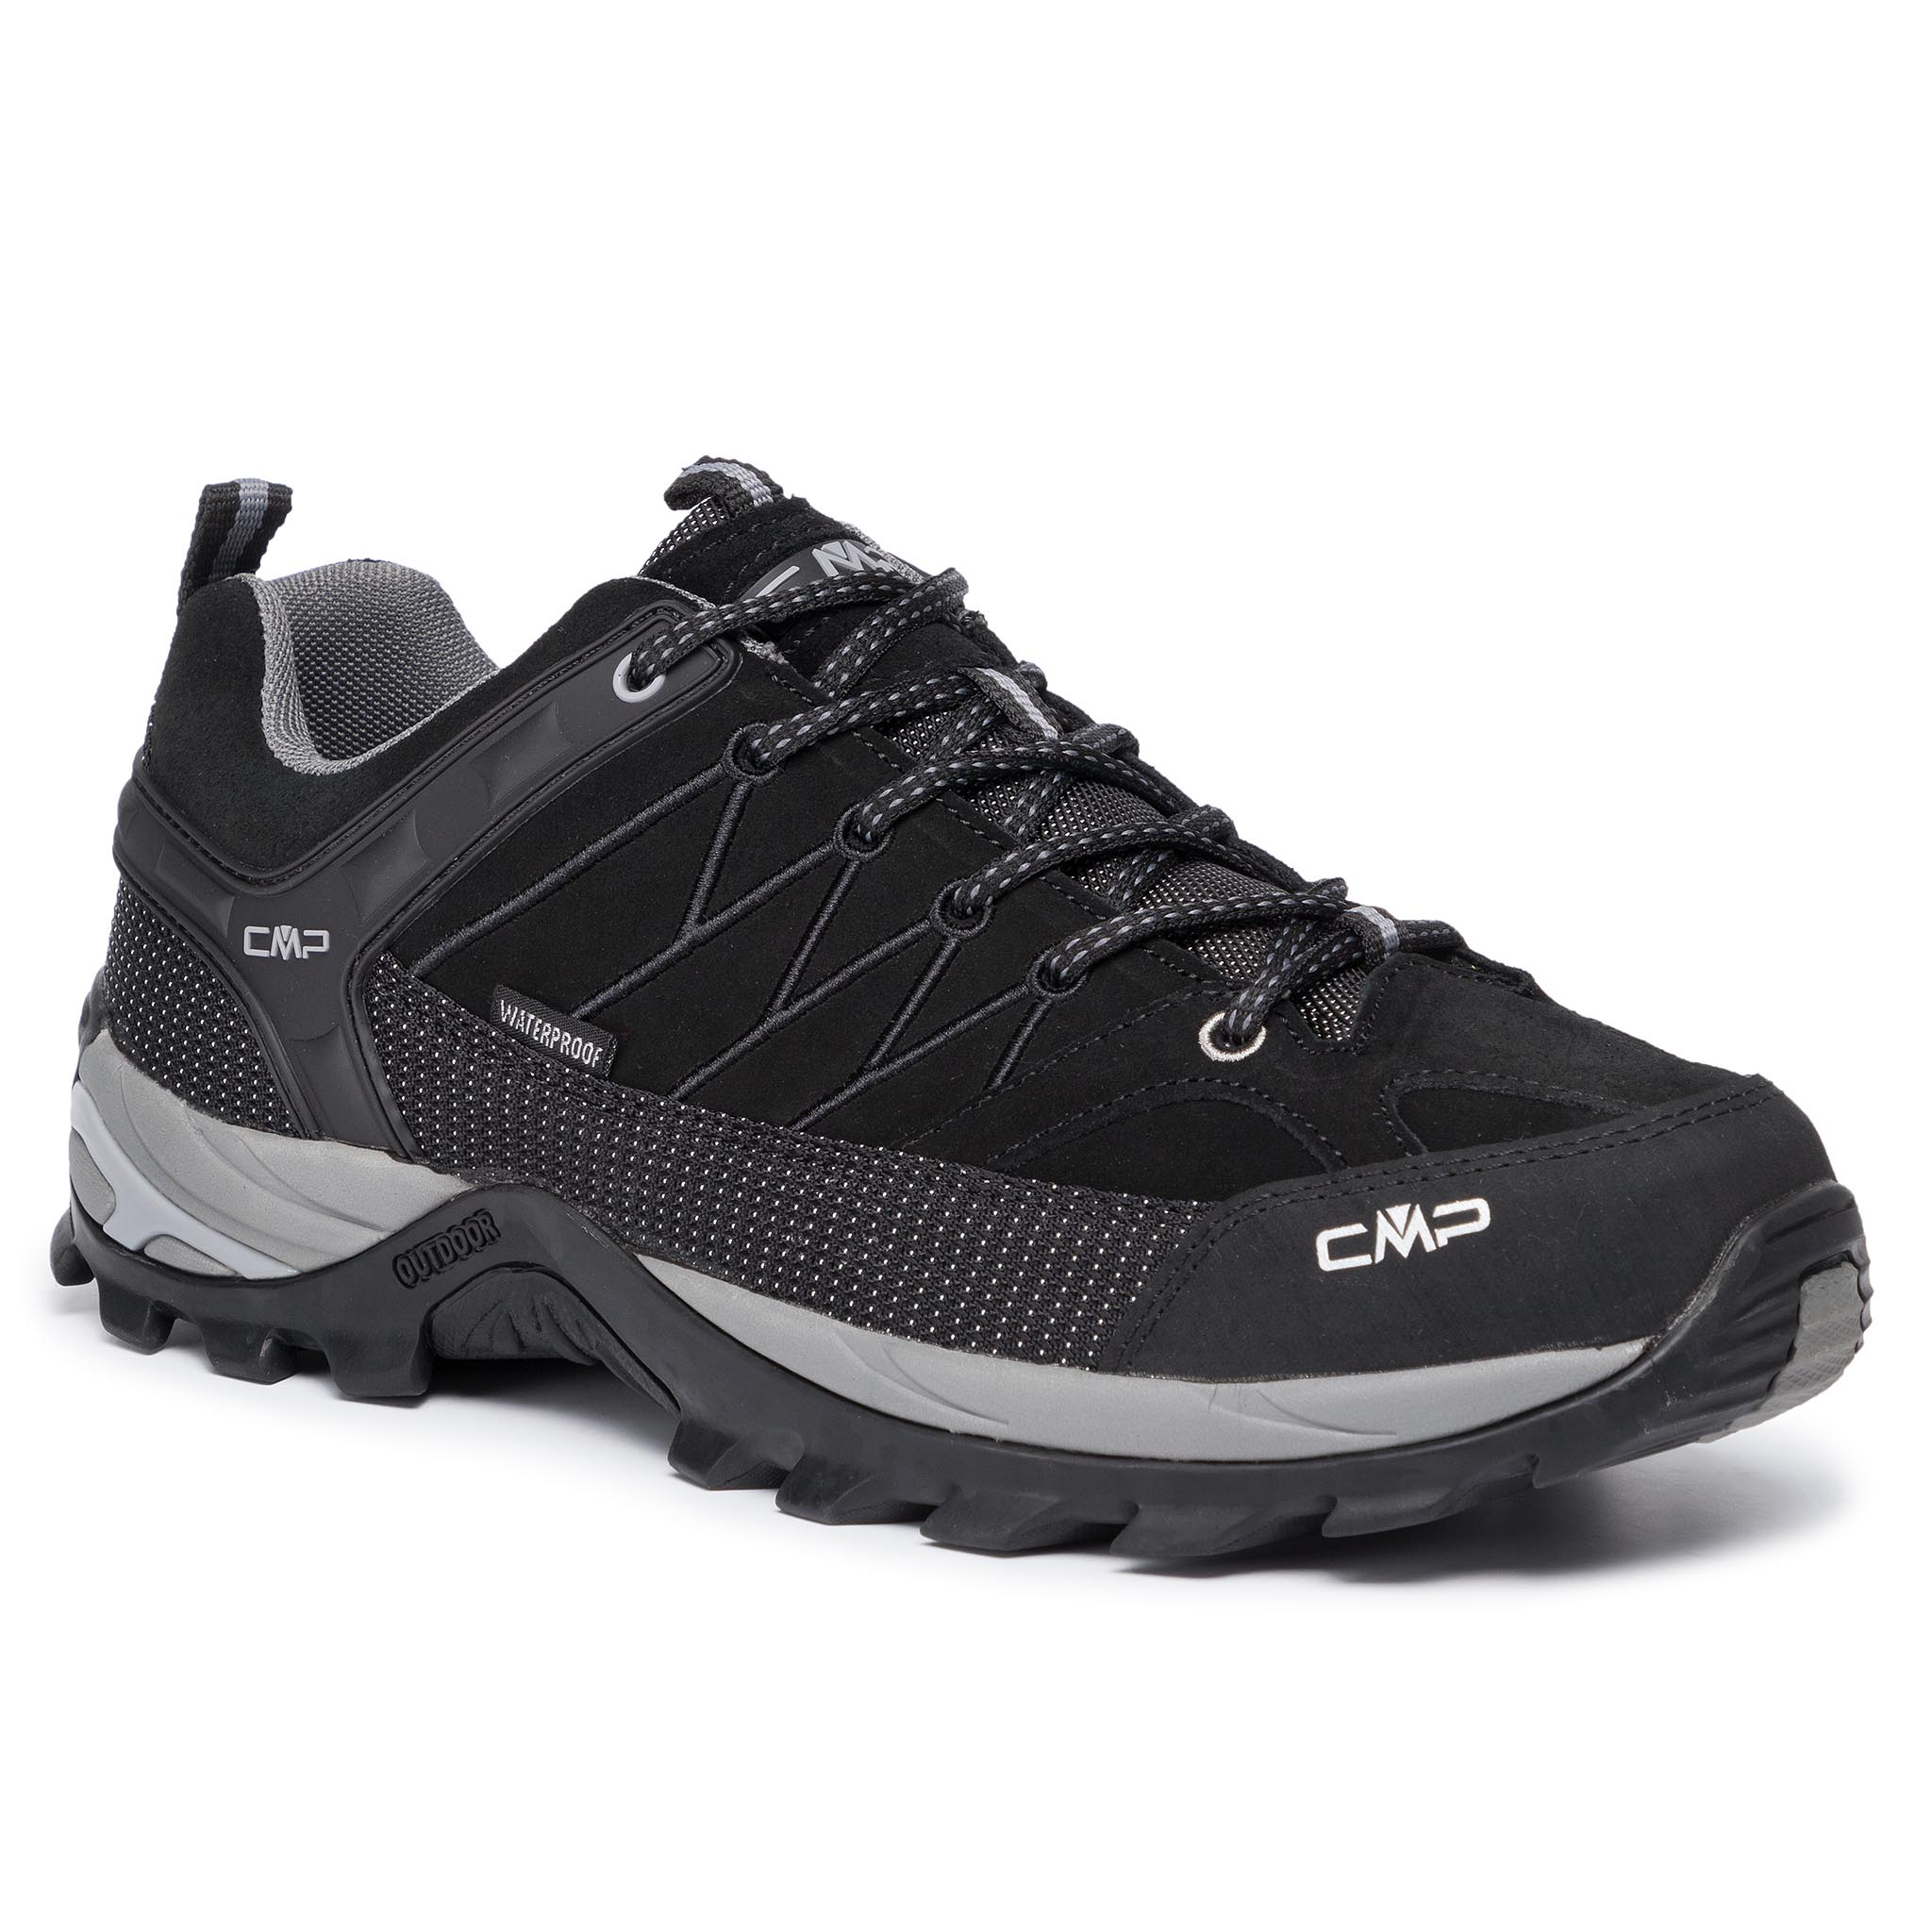 Trekkings CMP - Rigel Low Trekking Shoes Wp 3Q13247 Nero/Grey 73UC